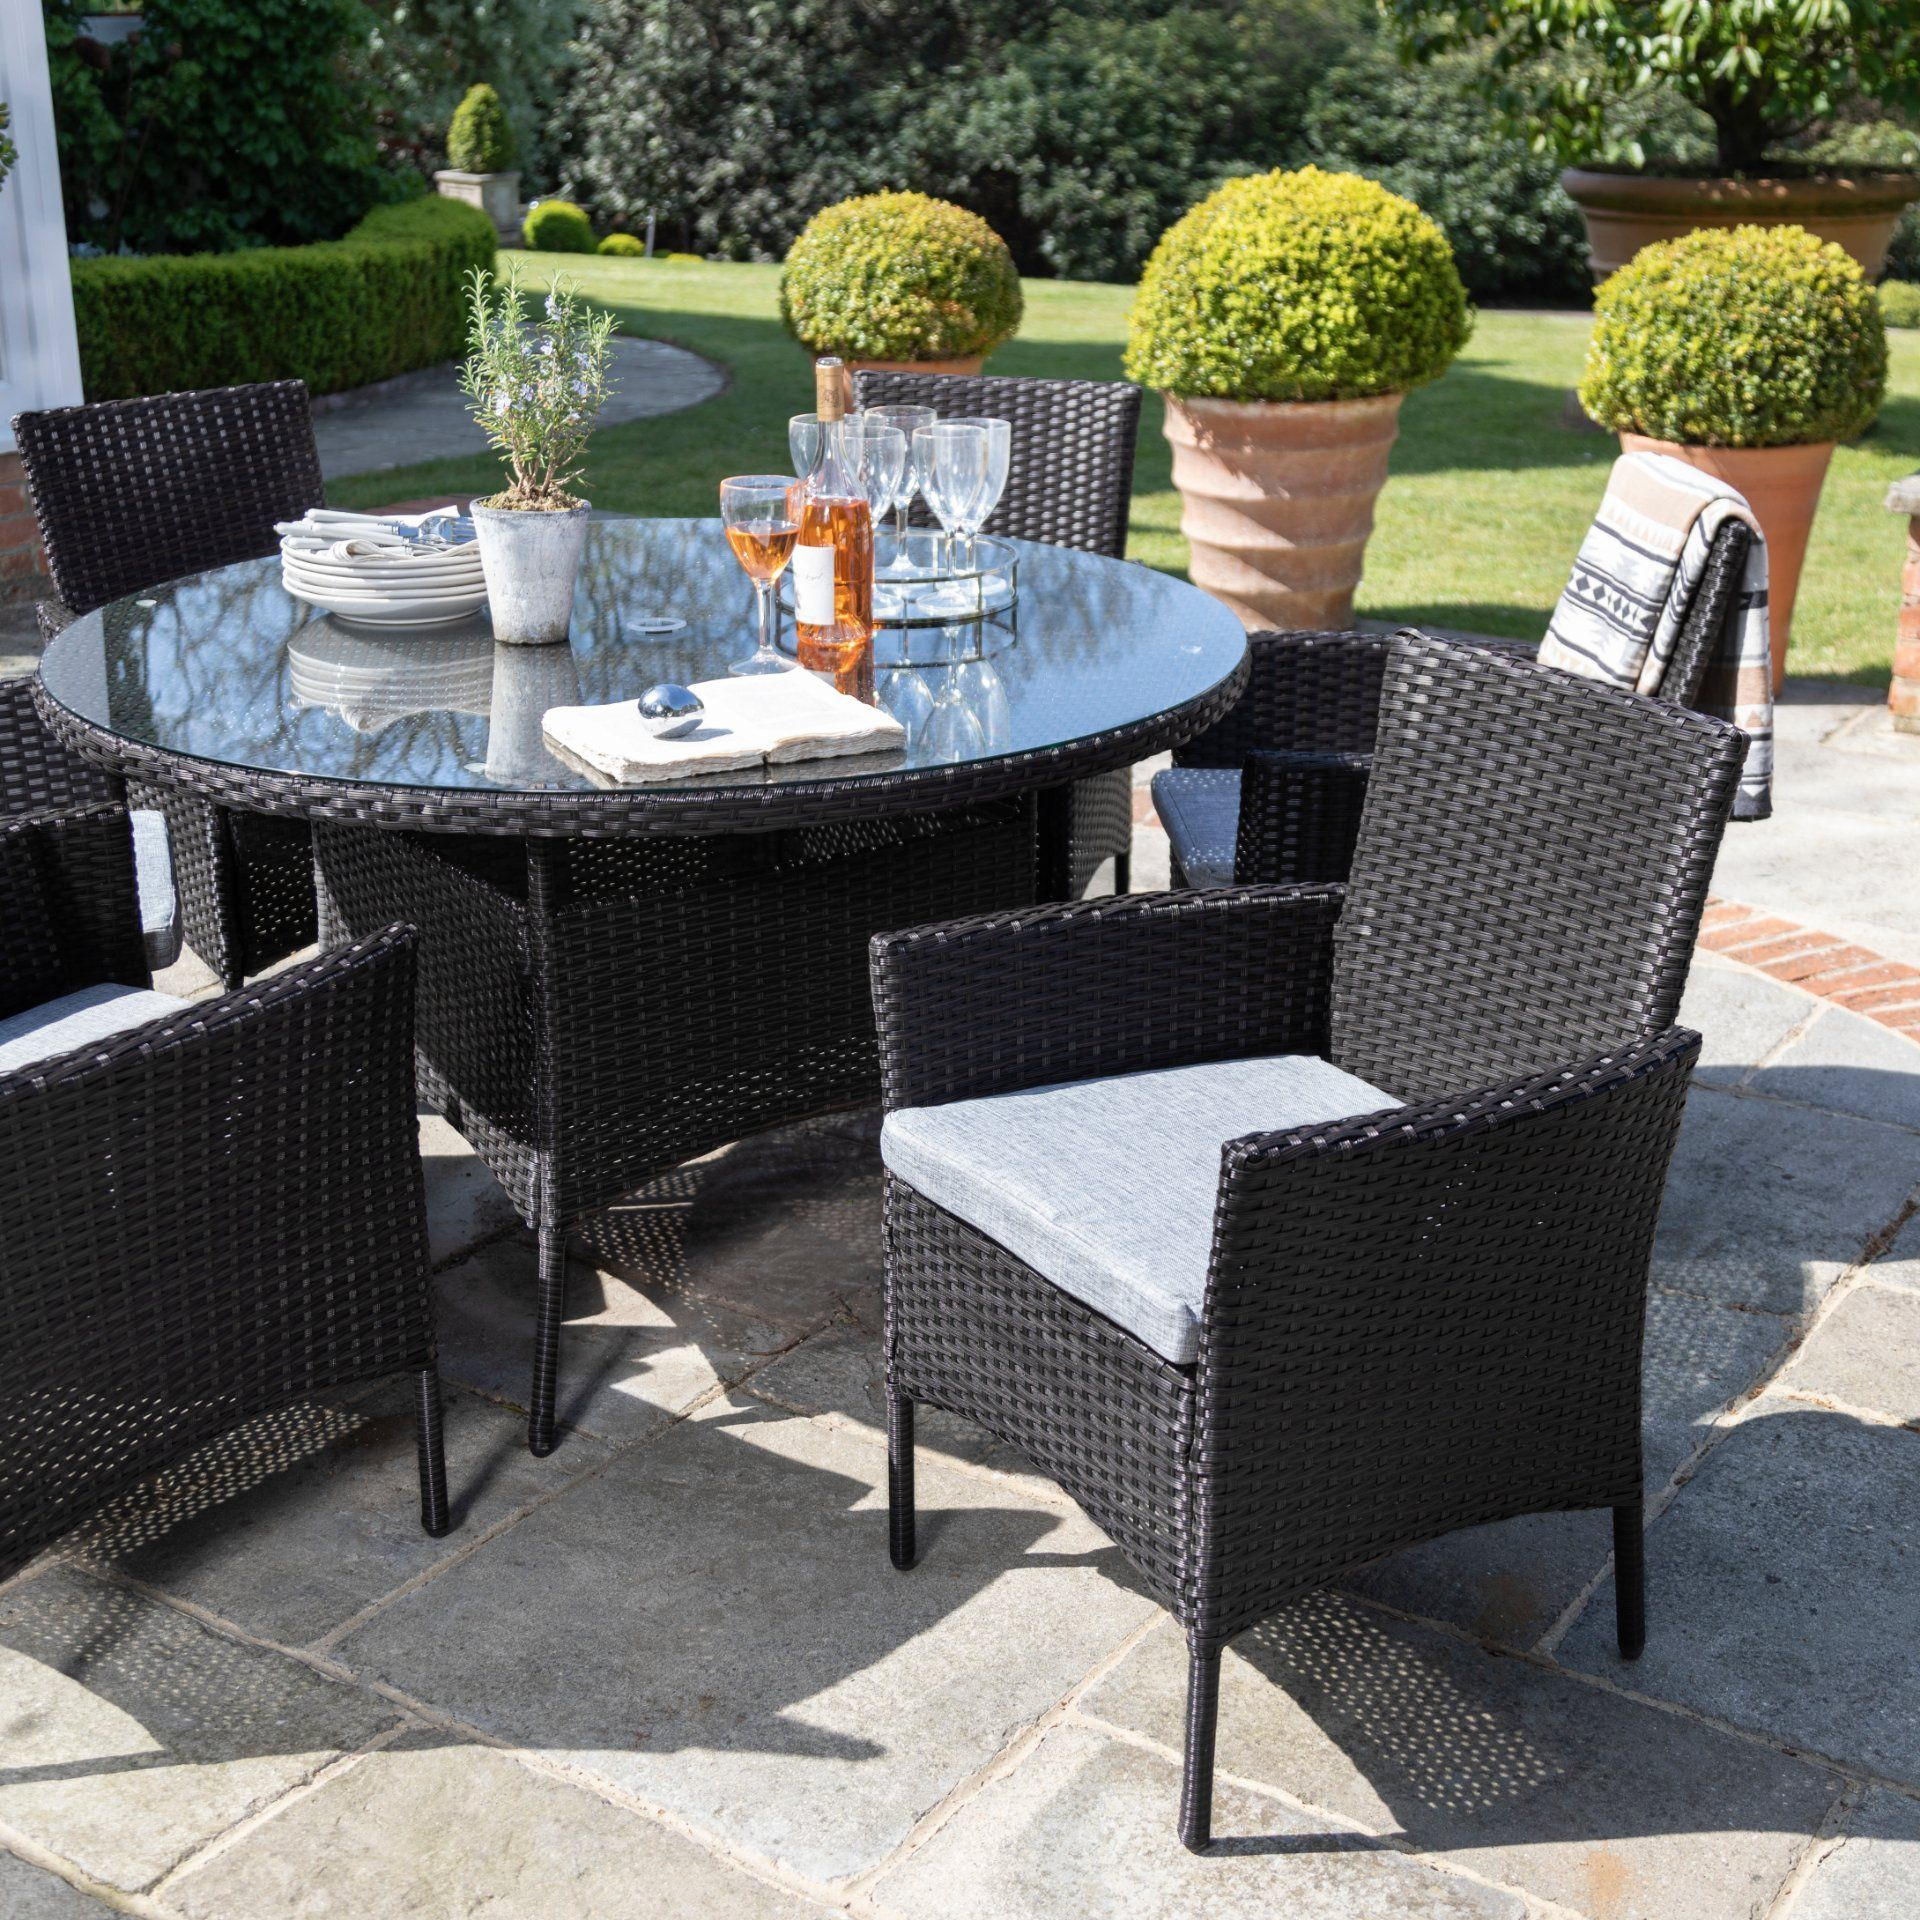 7 Seater Rattan Round Dining Table Set in Black - Garden Furniture